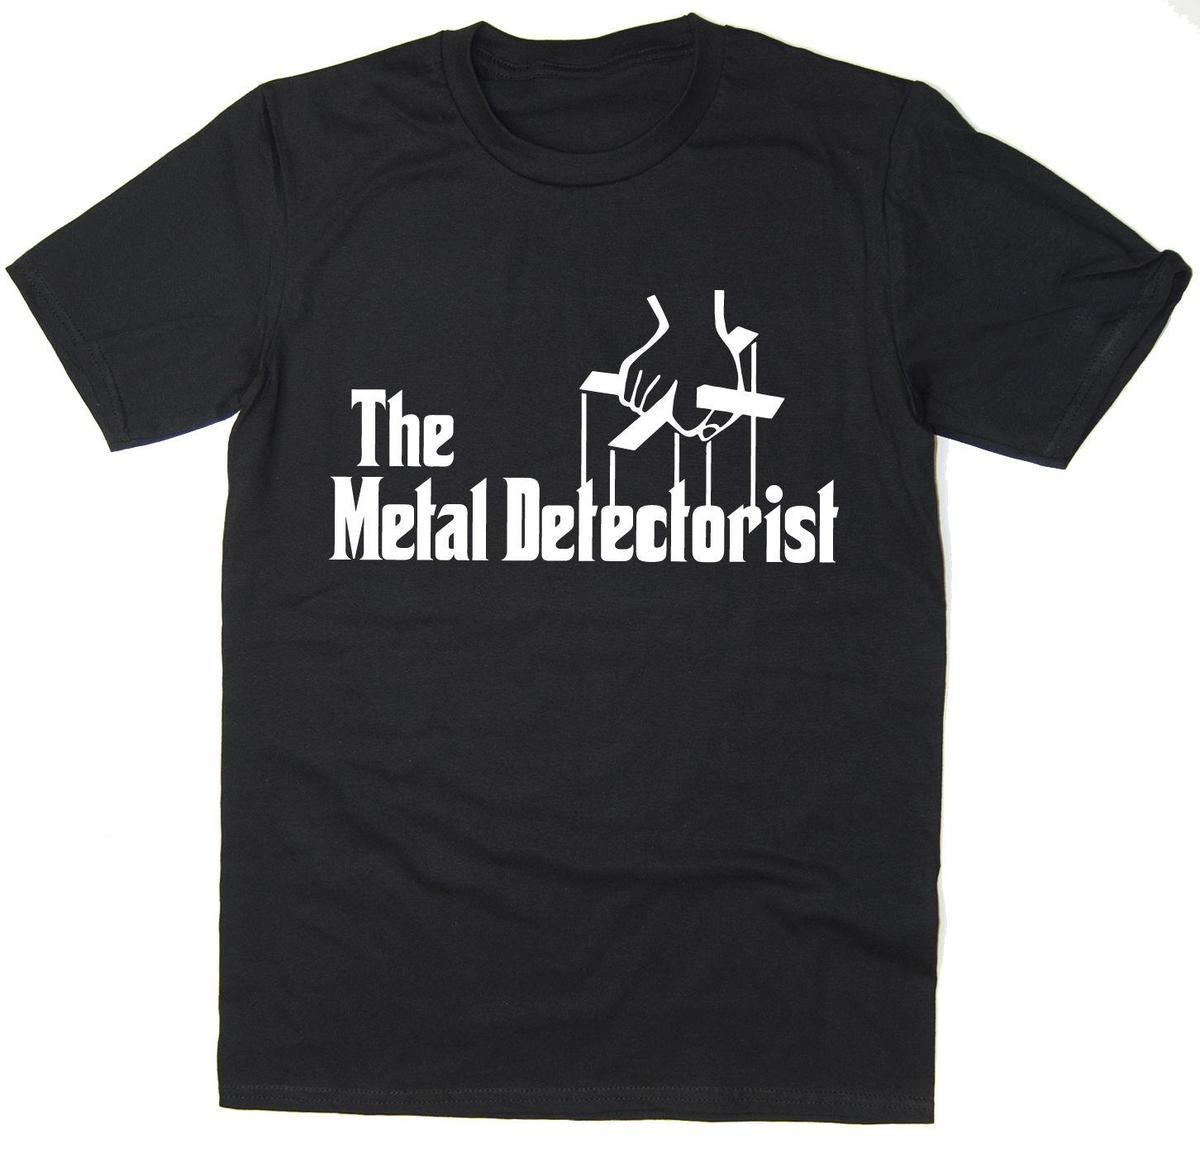 The Metal Detectorist - Funny Detecting T-Shirt - Godfather Spoof - T-Shirt Taglie forti manica corta